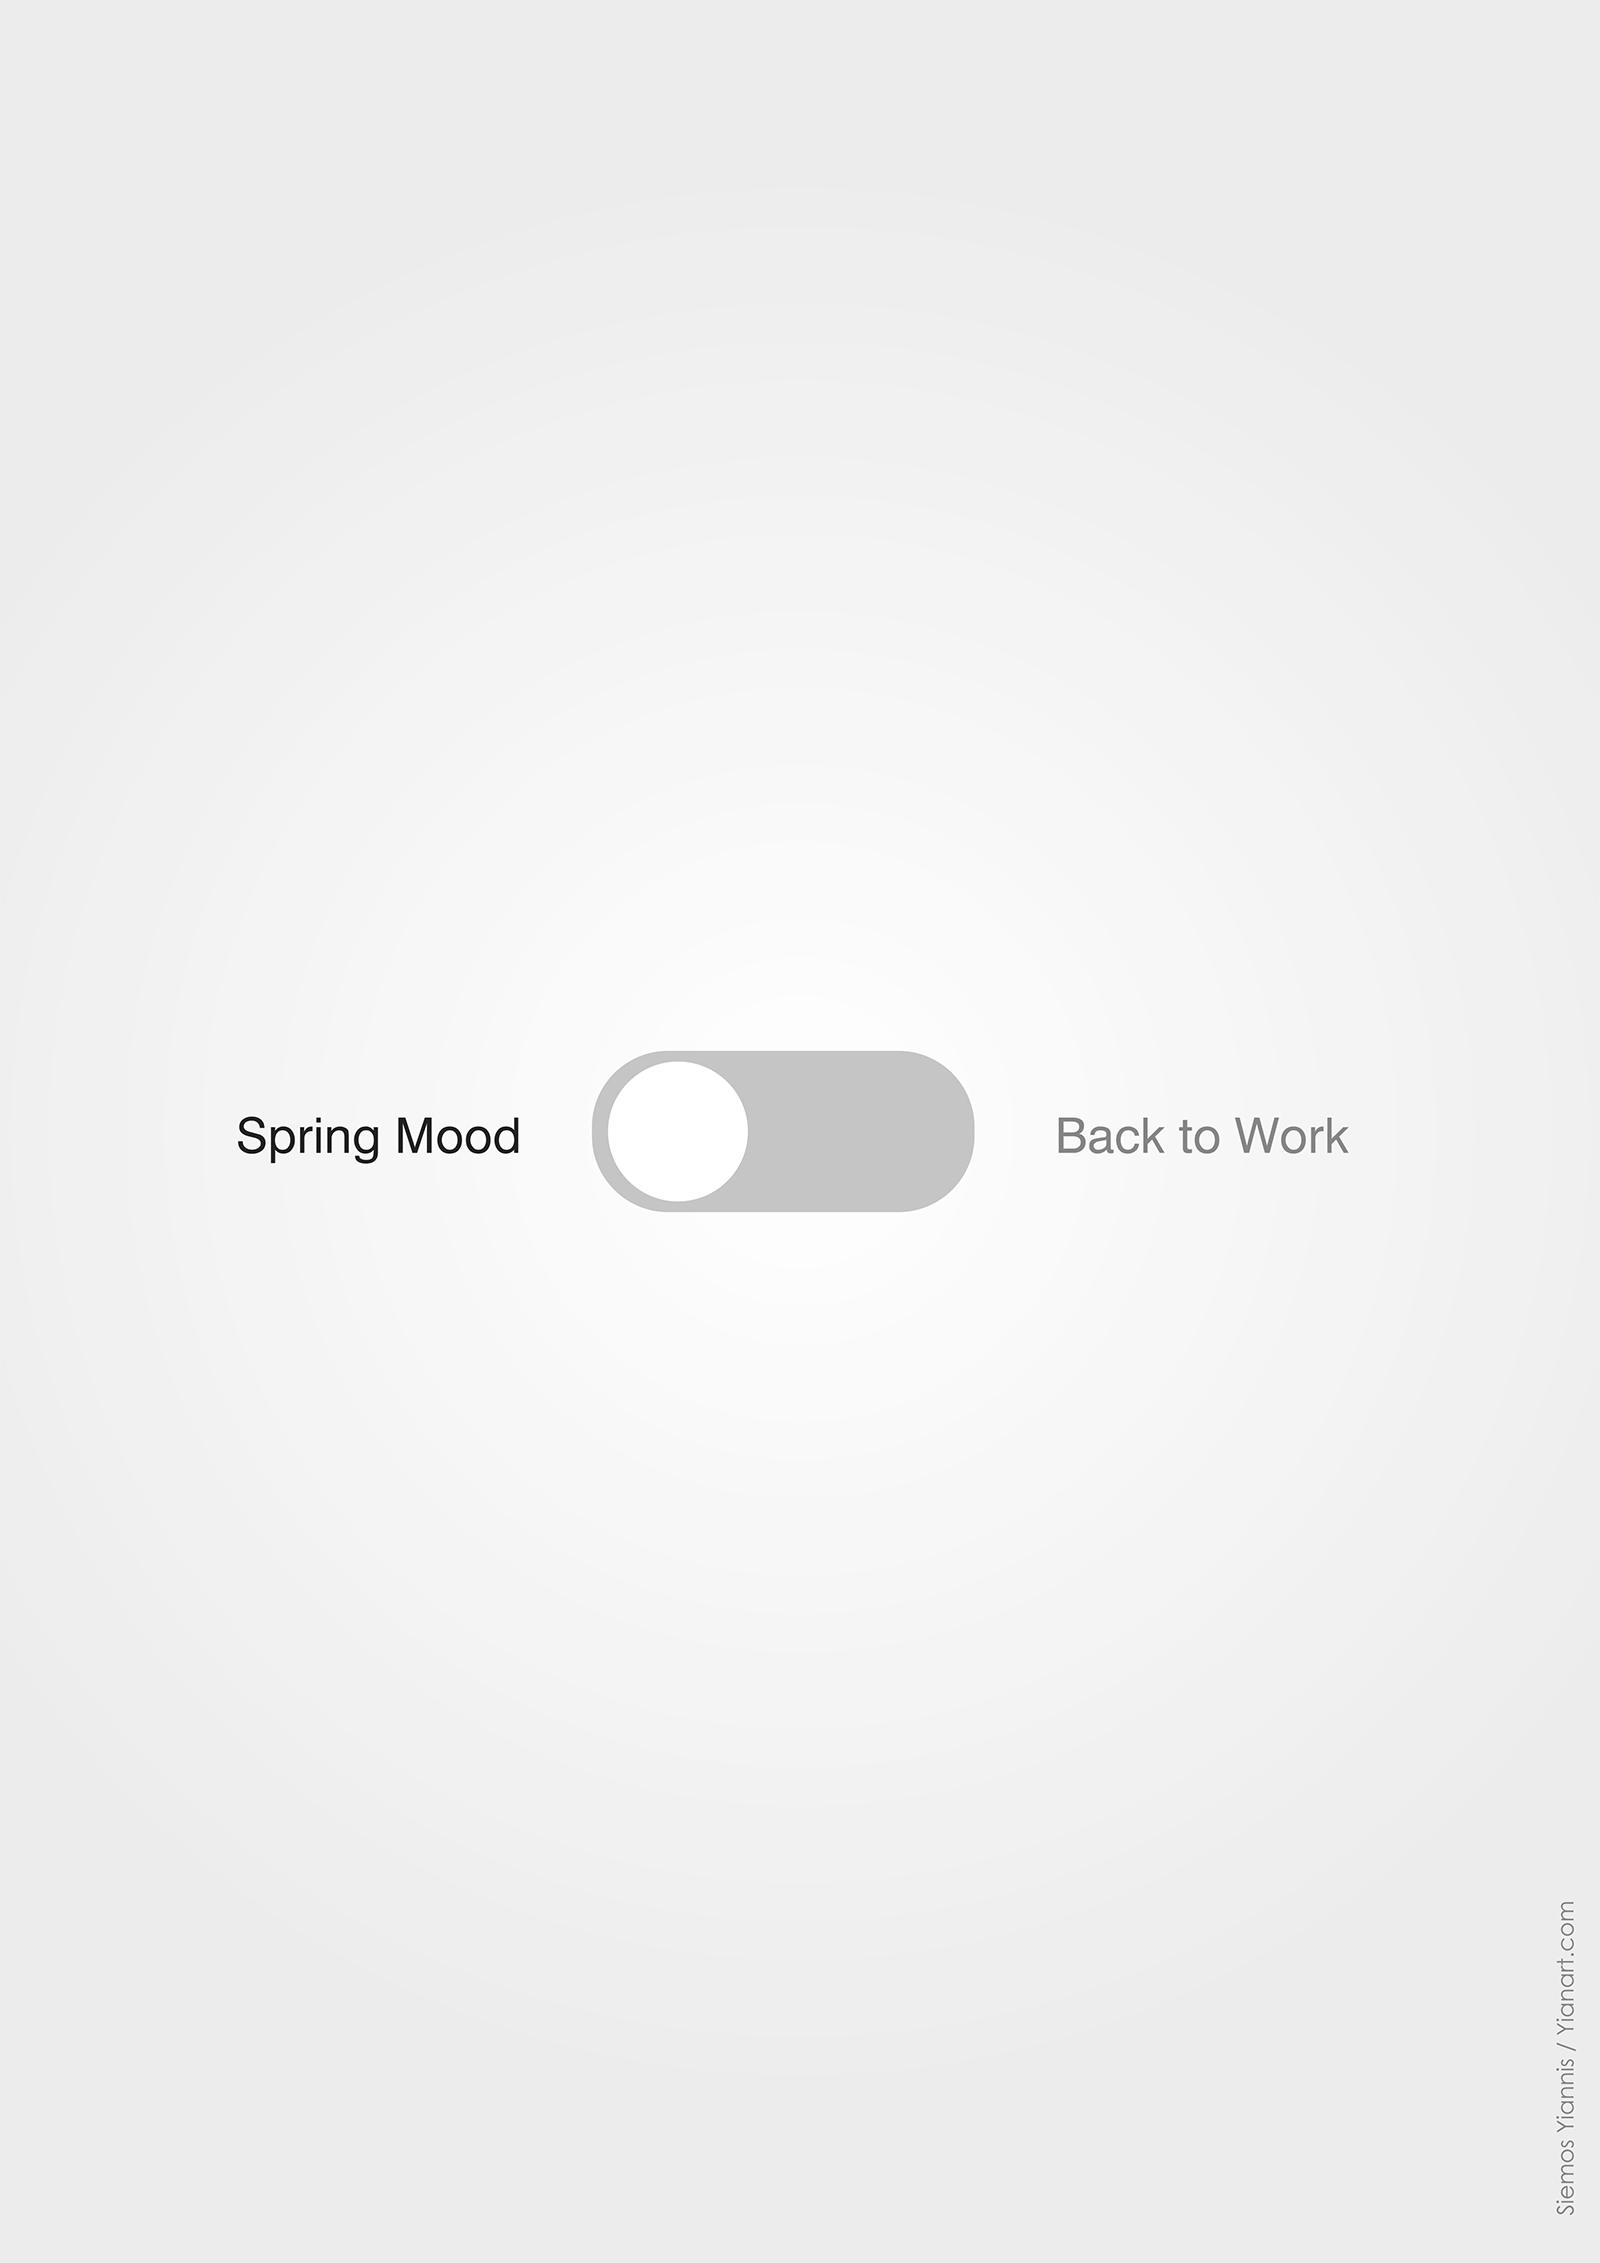 ICons_Spring Mood_Back to work_yianart.com